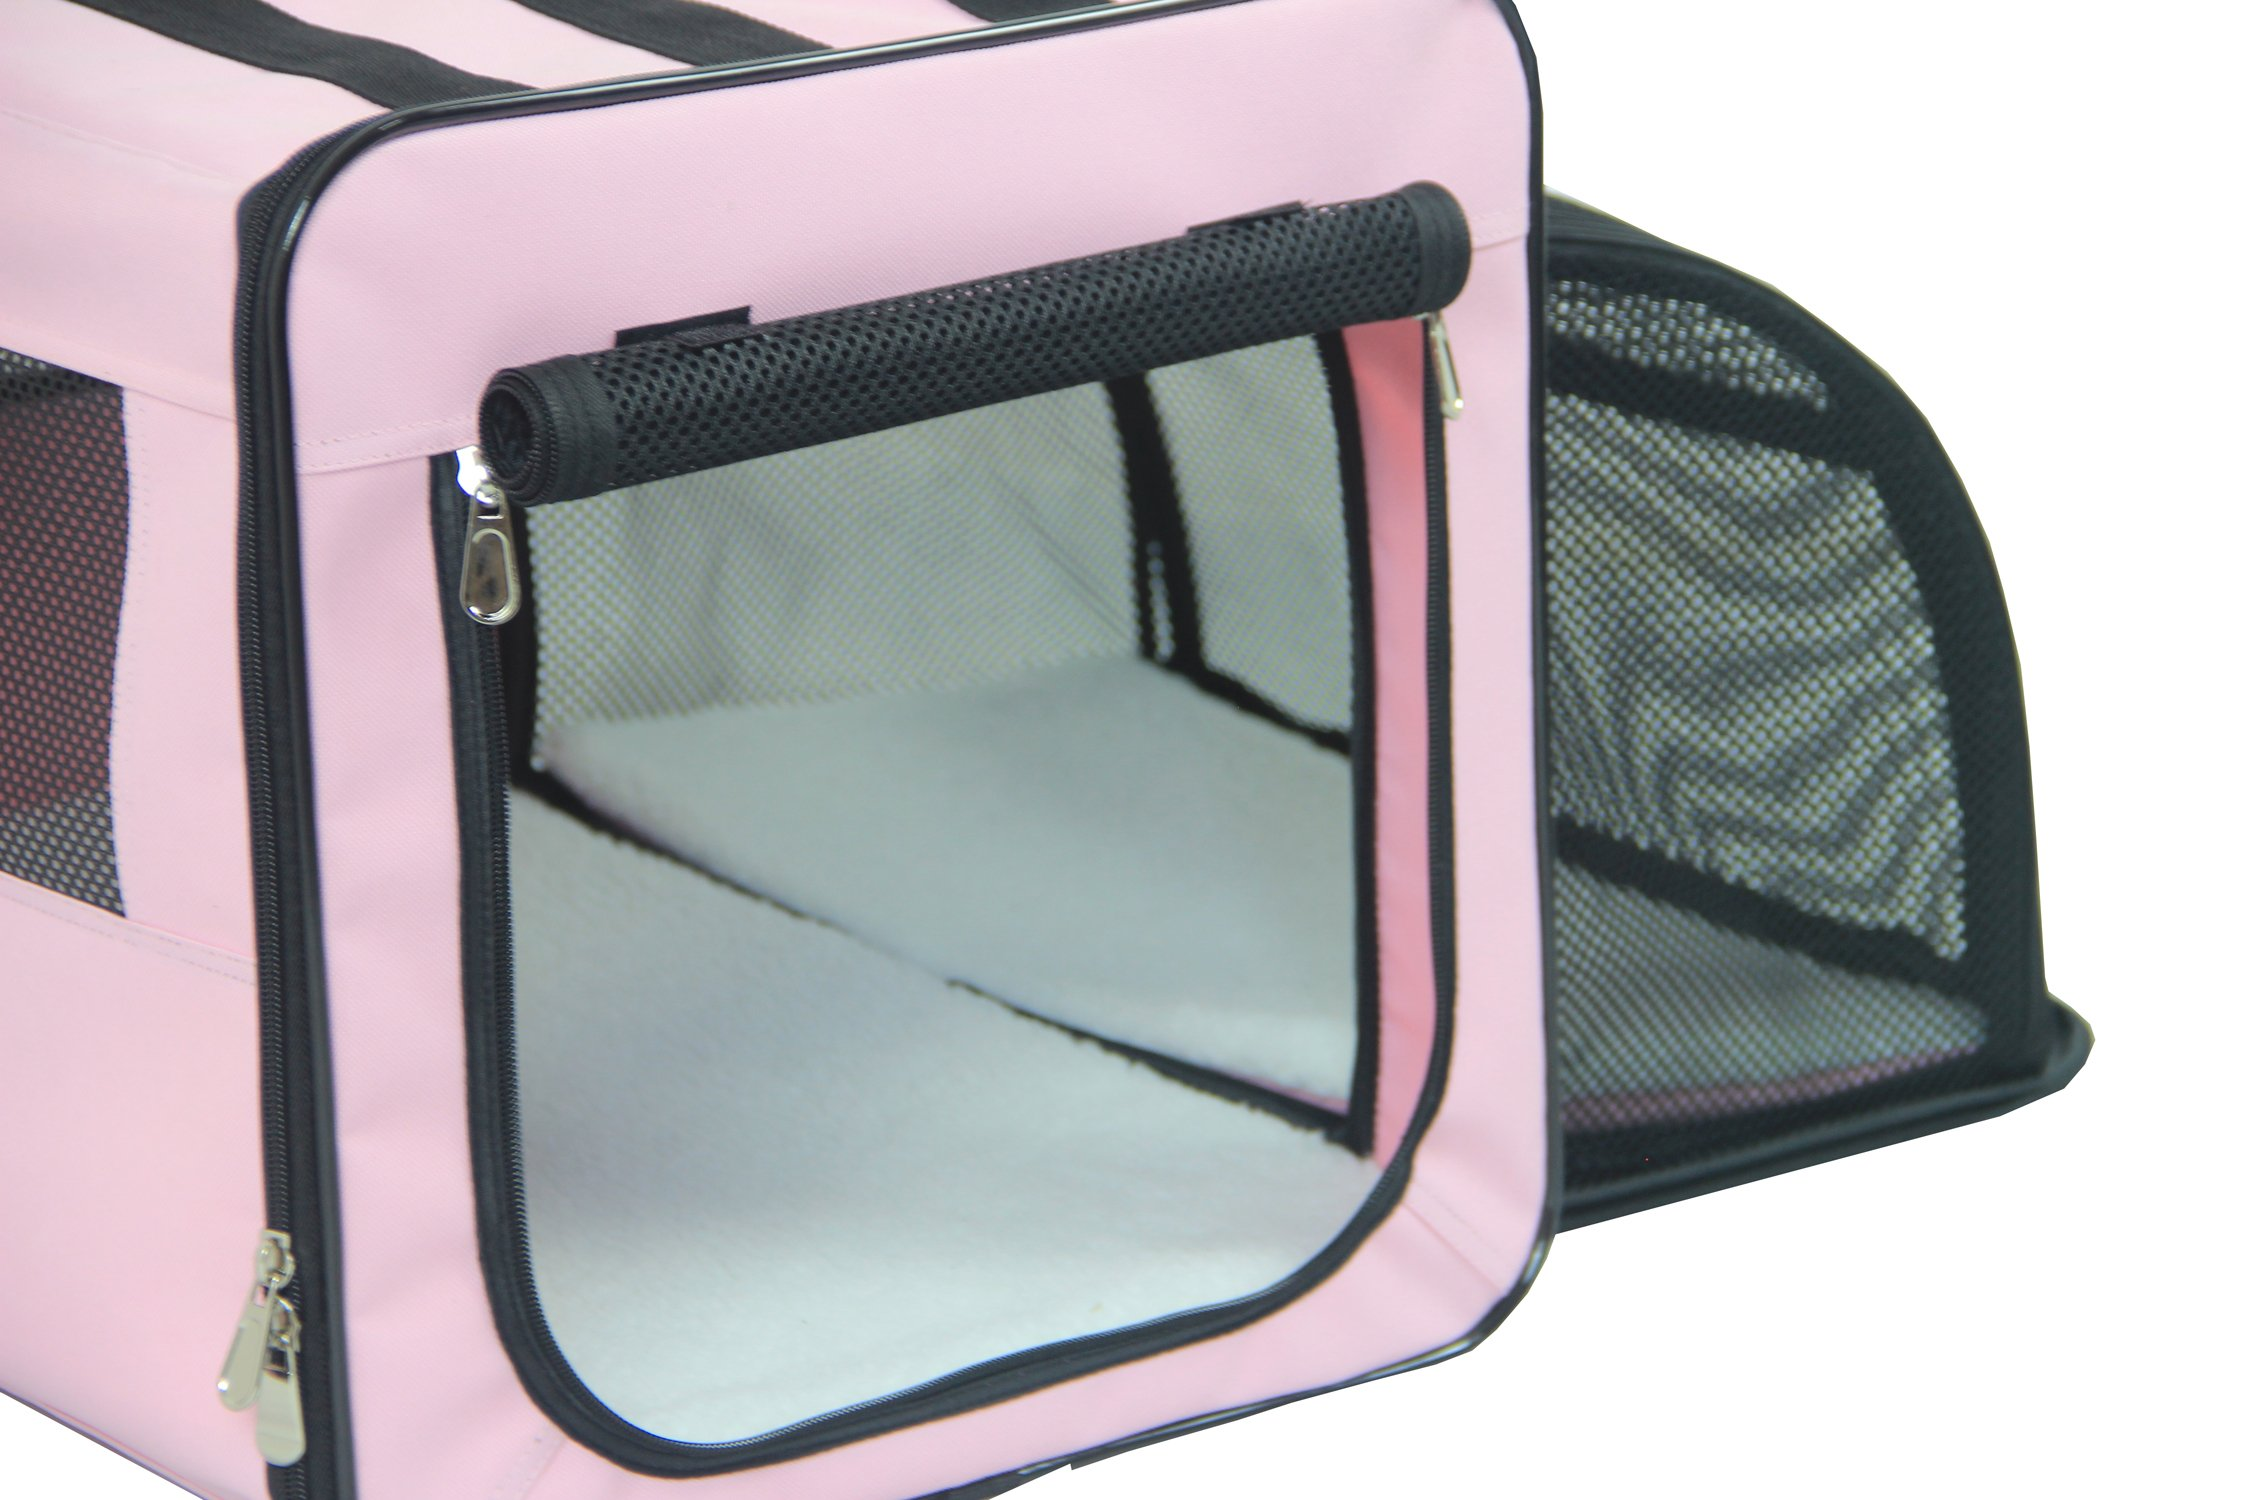 Pet Life Capacious' Dual-Sided Expandable Spacious Wire Folding Collapsible Lightweight Pet Dog Crate Carrier House, Large, Pink by Pet Life (Image #5)